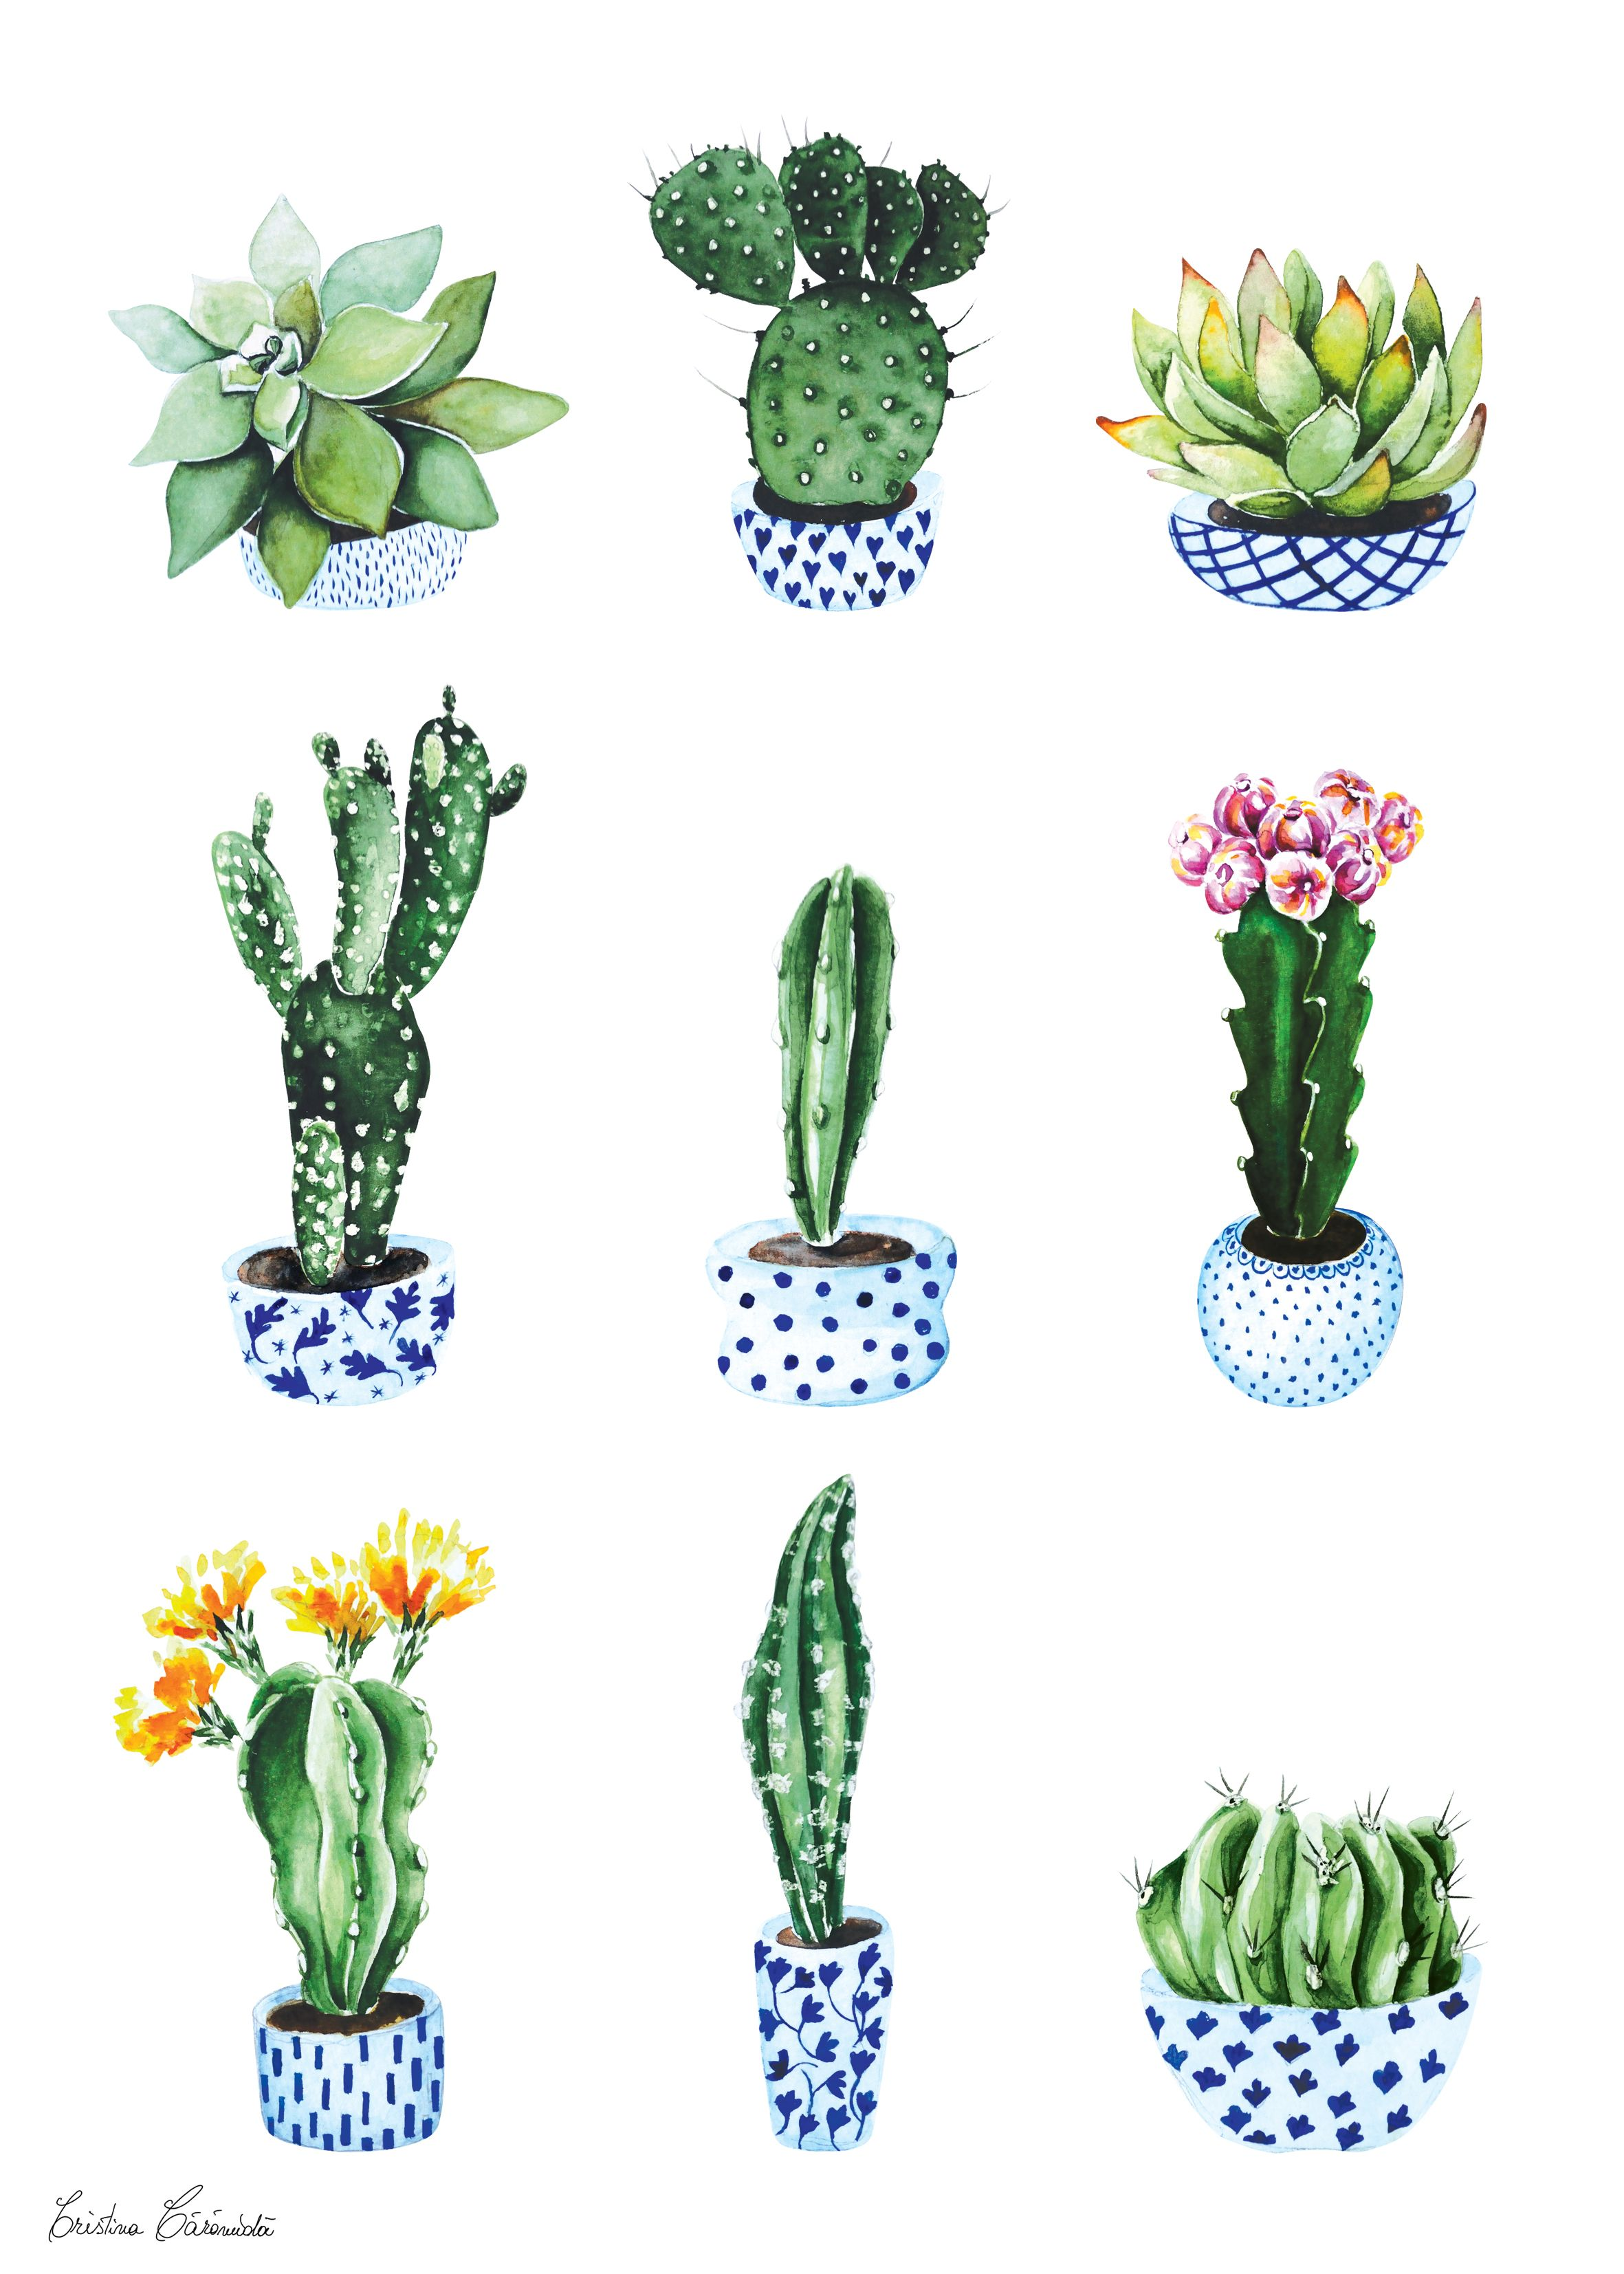 20 Cactus Doodle Tumblr 1000x1000 Pictures And Ideas On Meta Networks